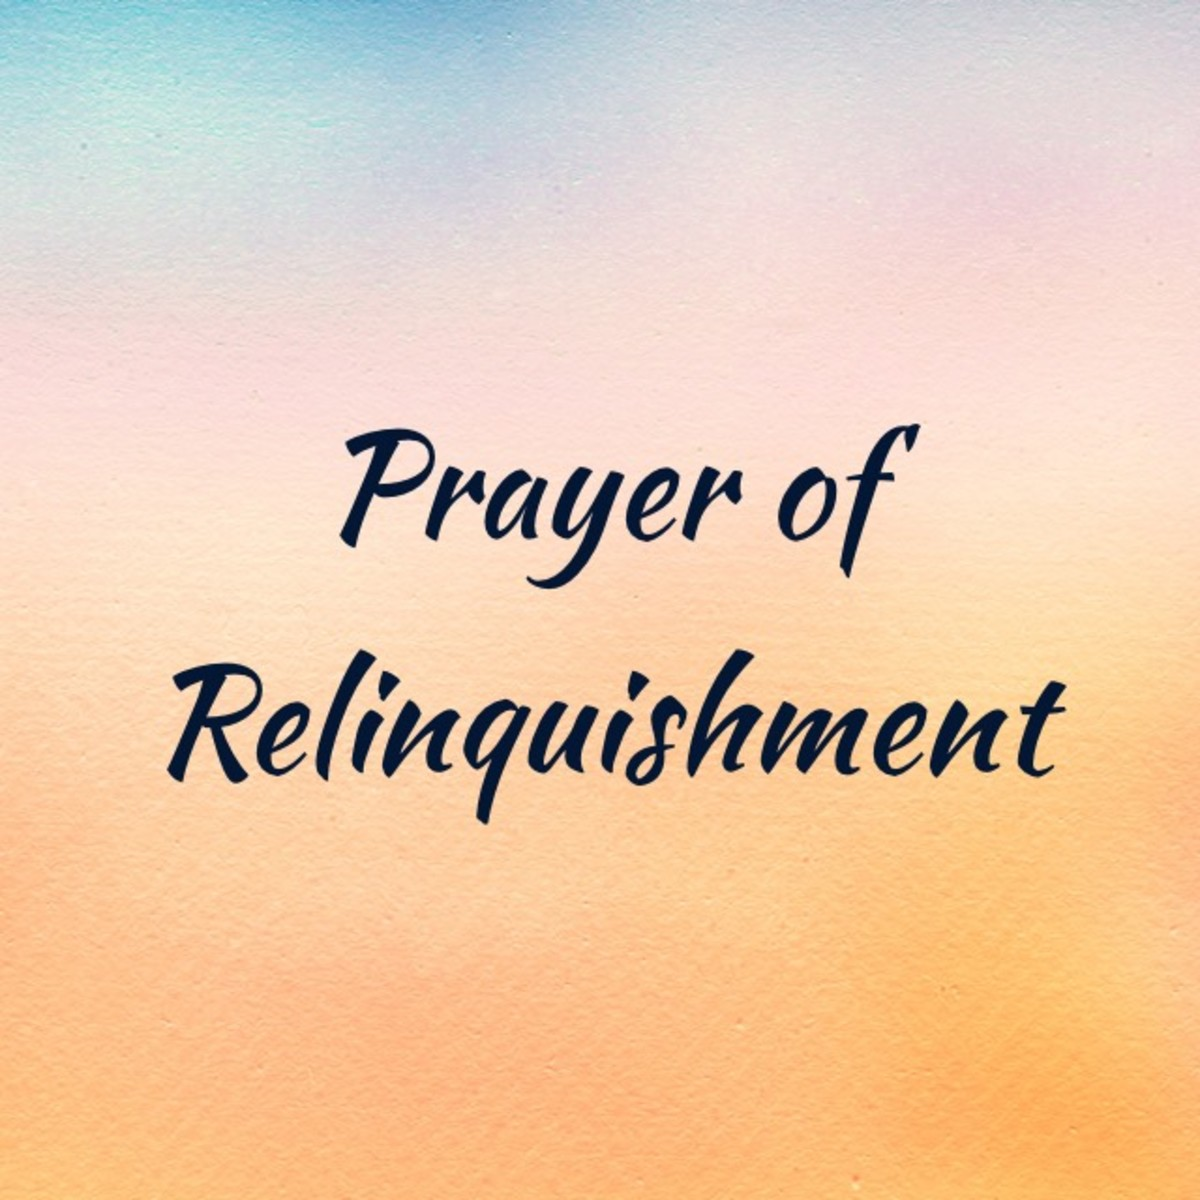 Relinquishment: What It Is And How It Works